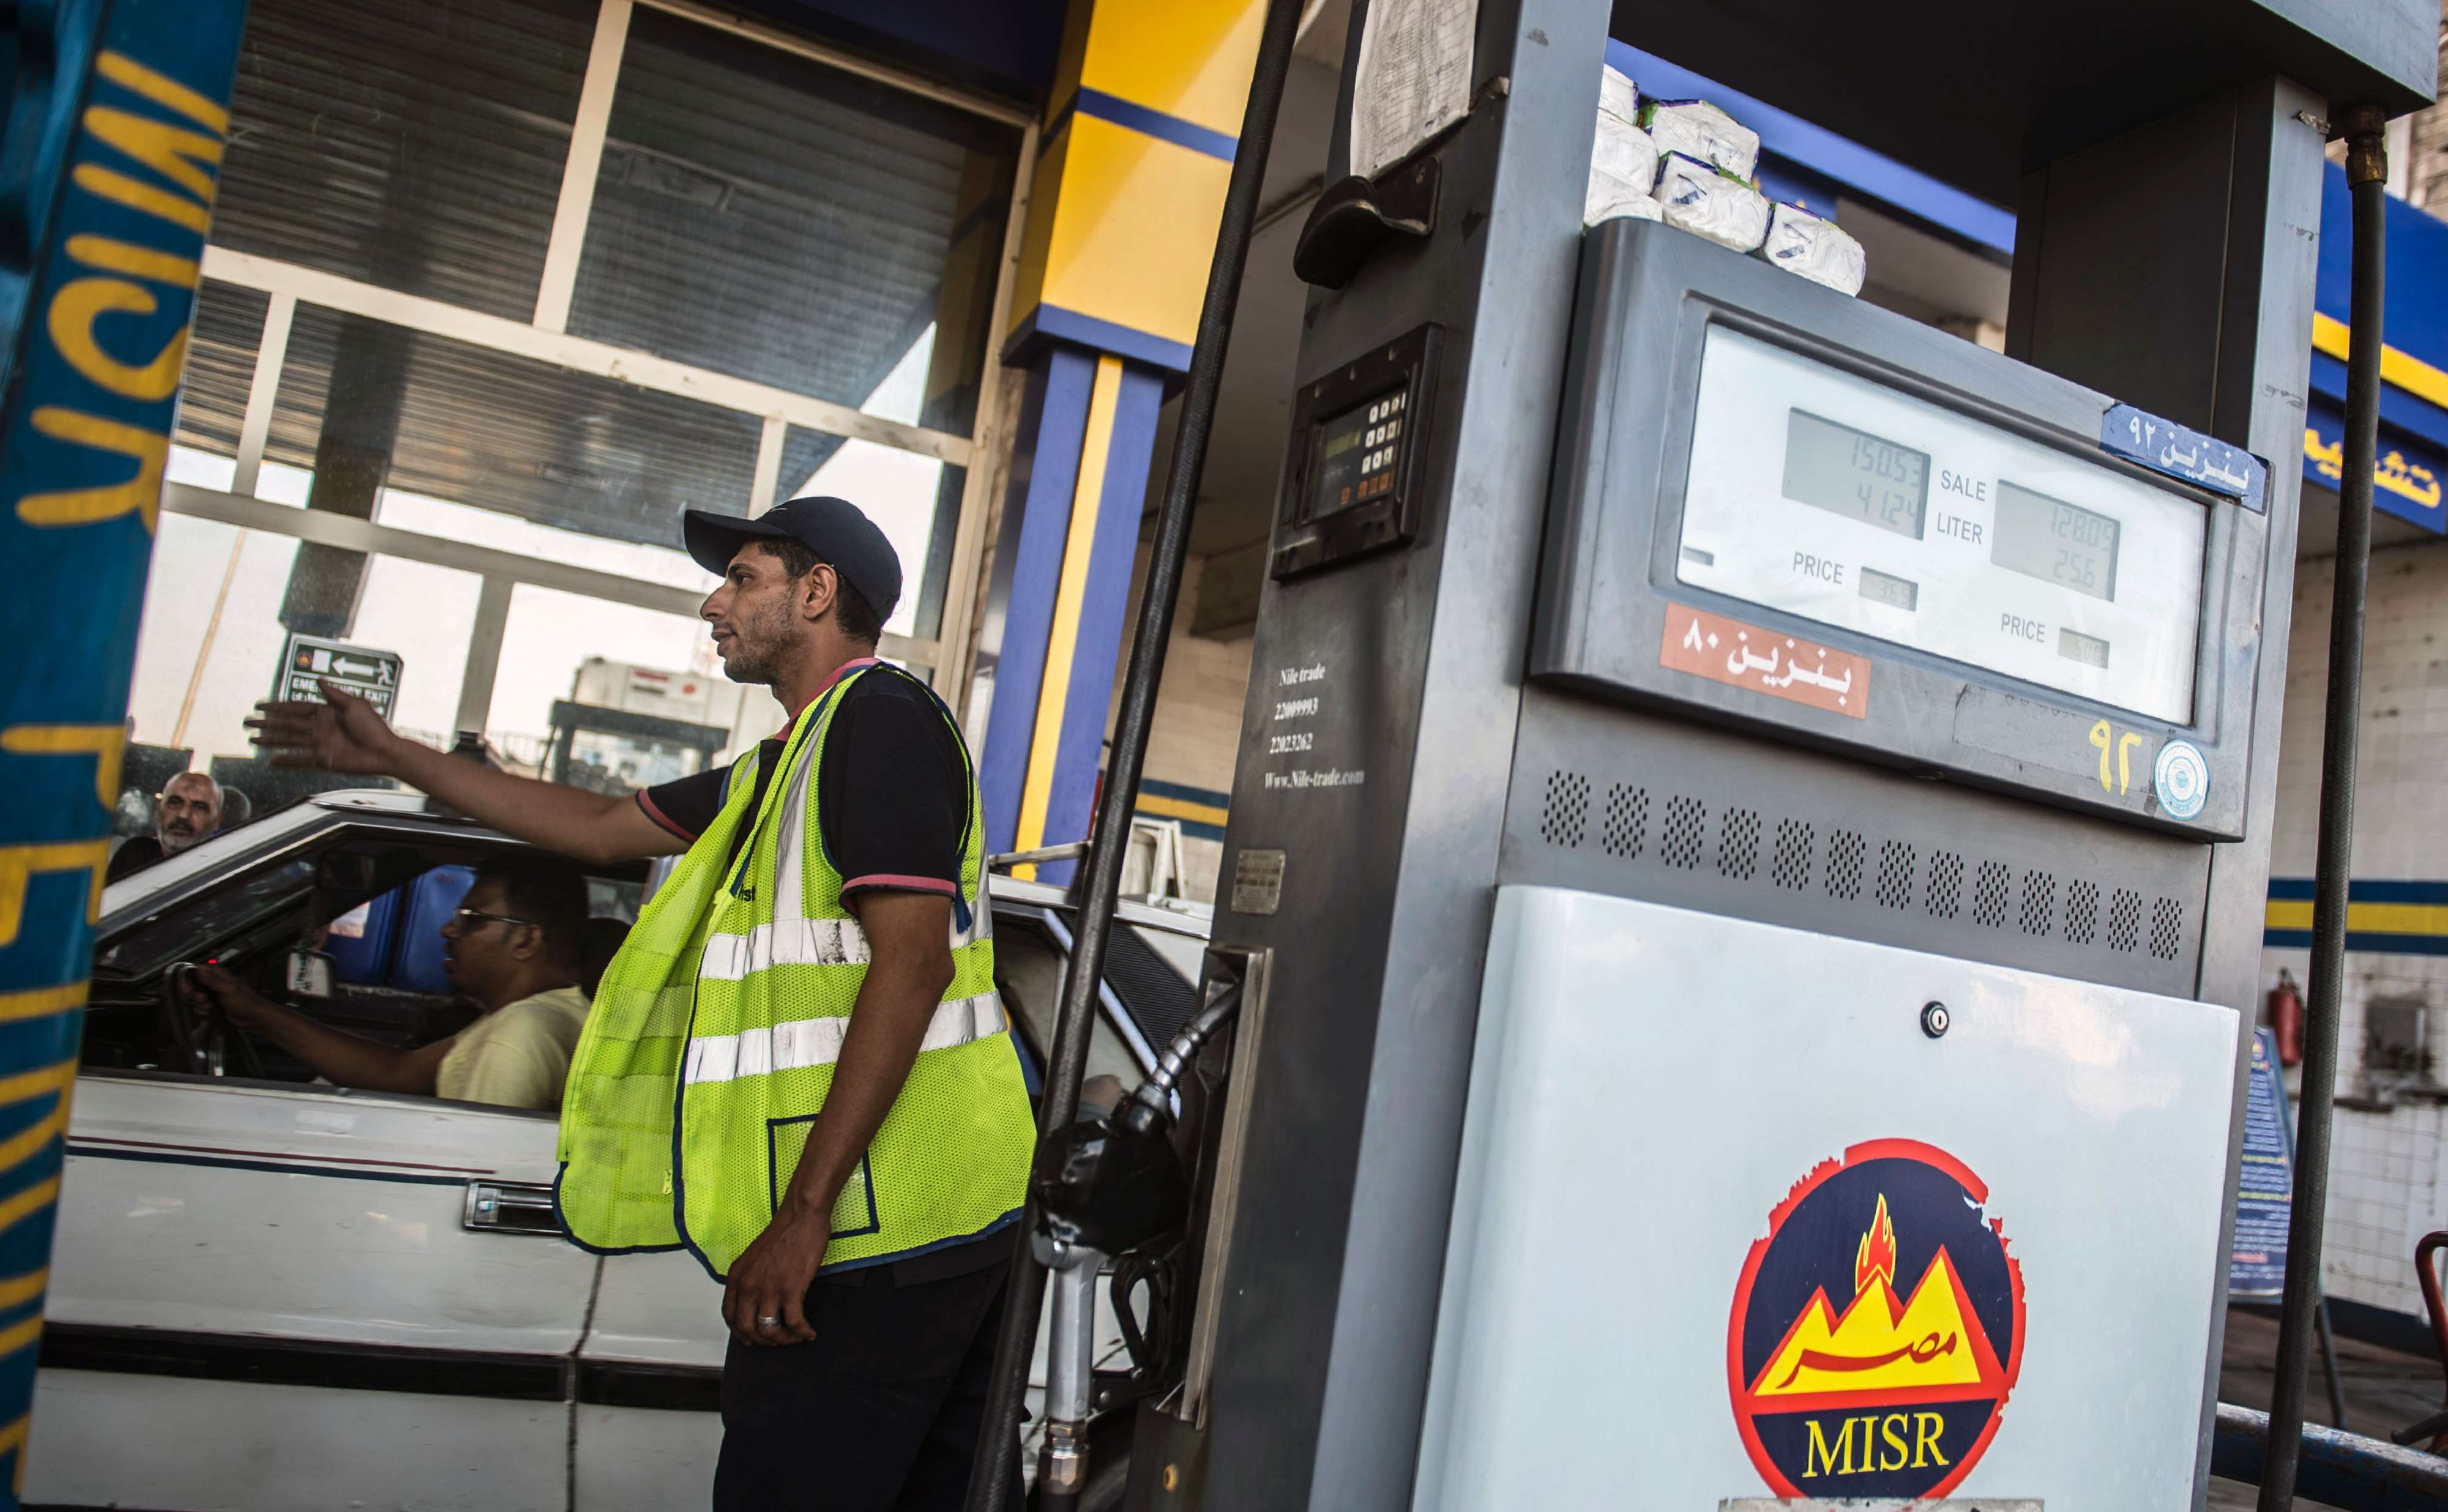 A worker gestures for cars to move as others fill up at a petrol station in Cairo. (AFP)